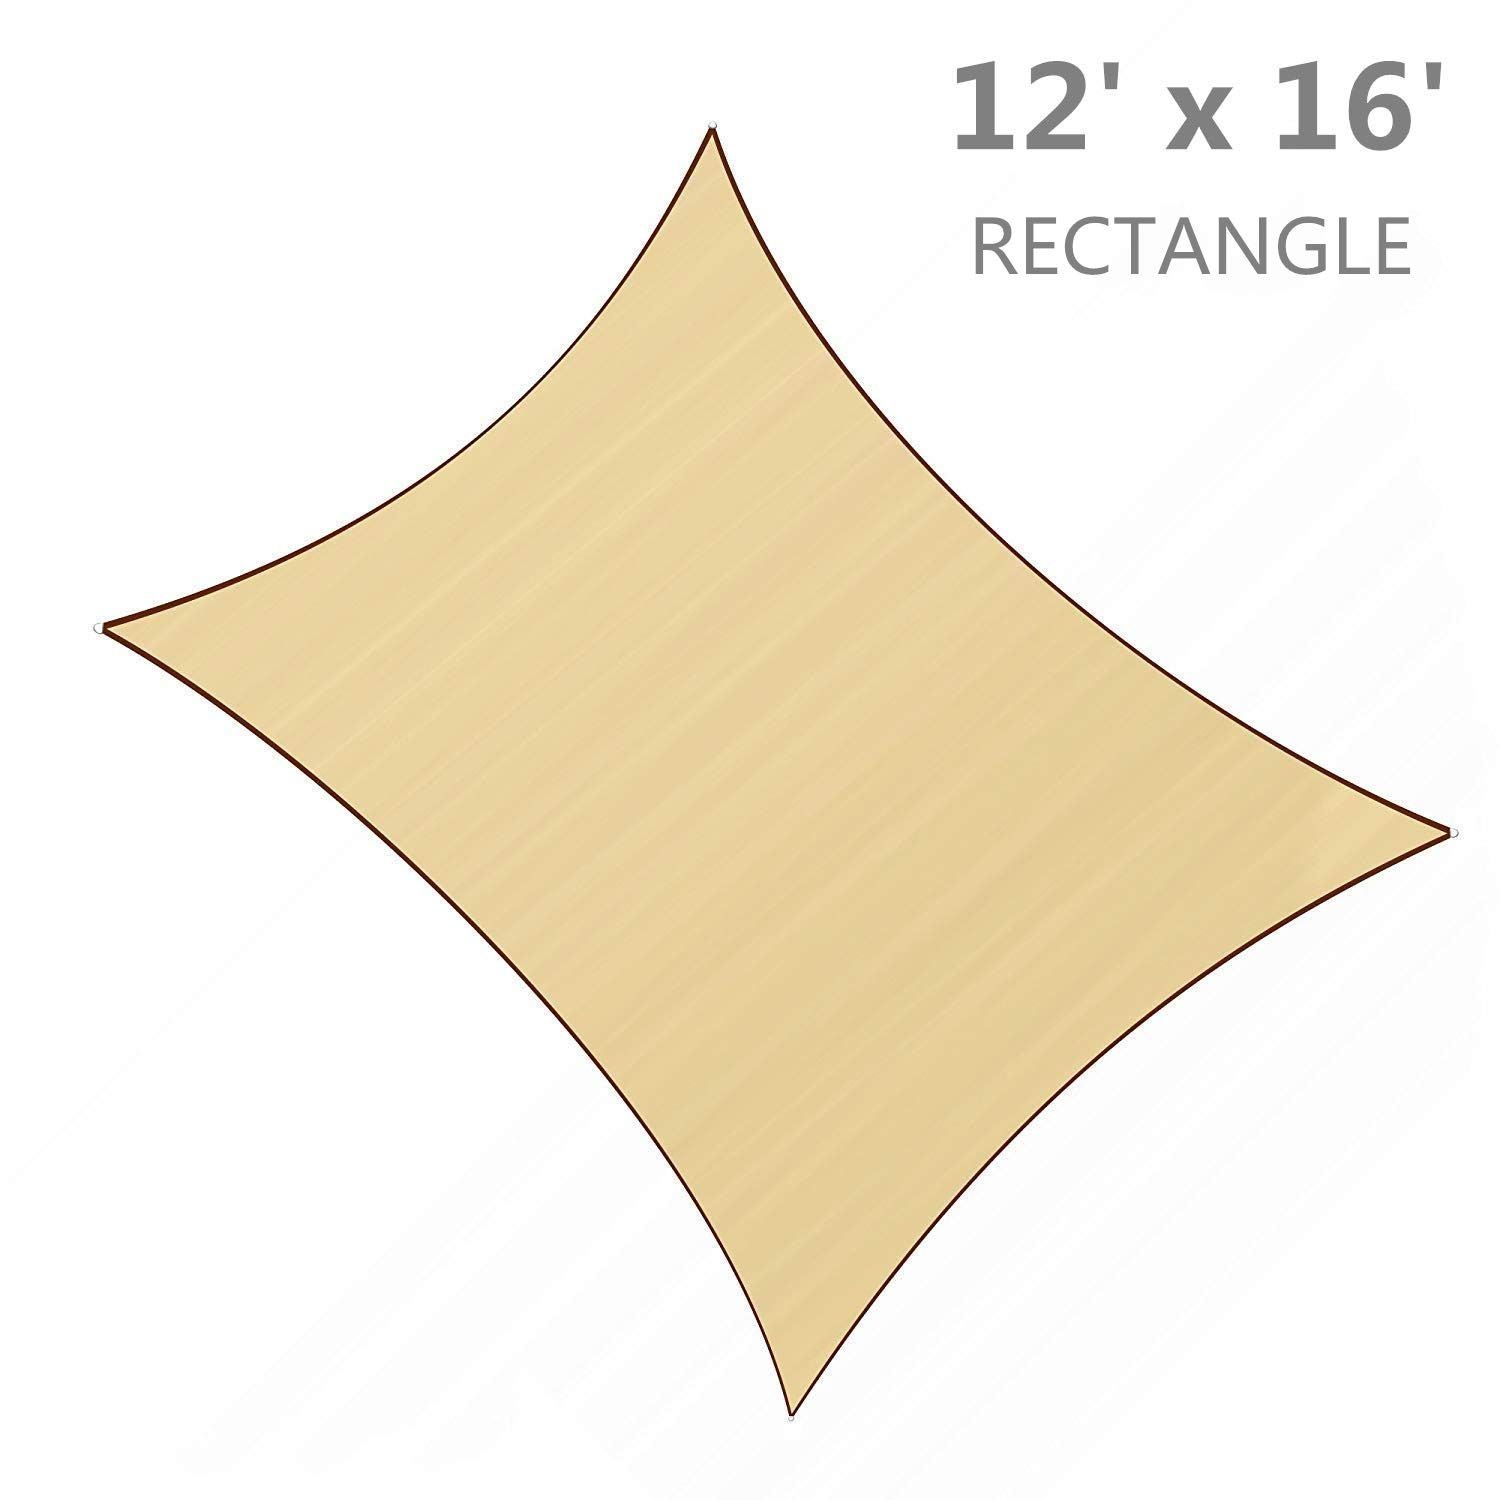 SUNLAX 12 x 16 Rectangle Sun Shade Sail Sand Color UV Resistant for Outdoor Patio Lawn Garden Activities